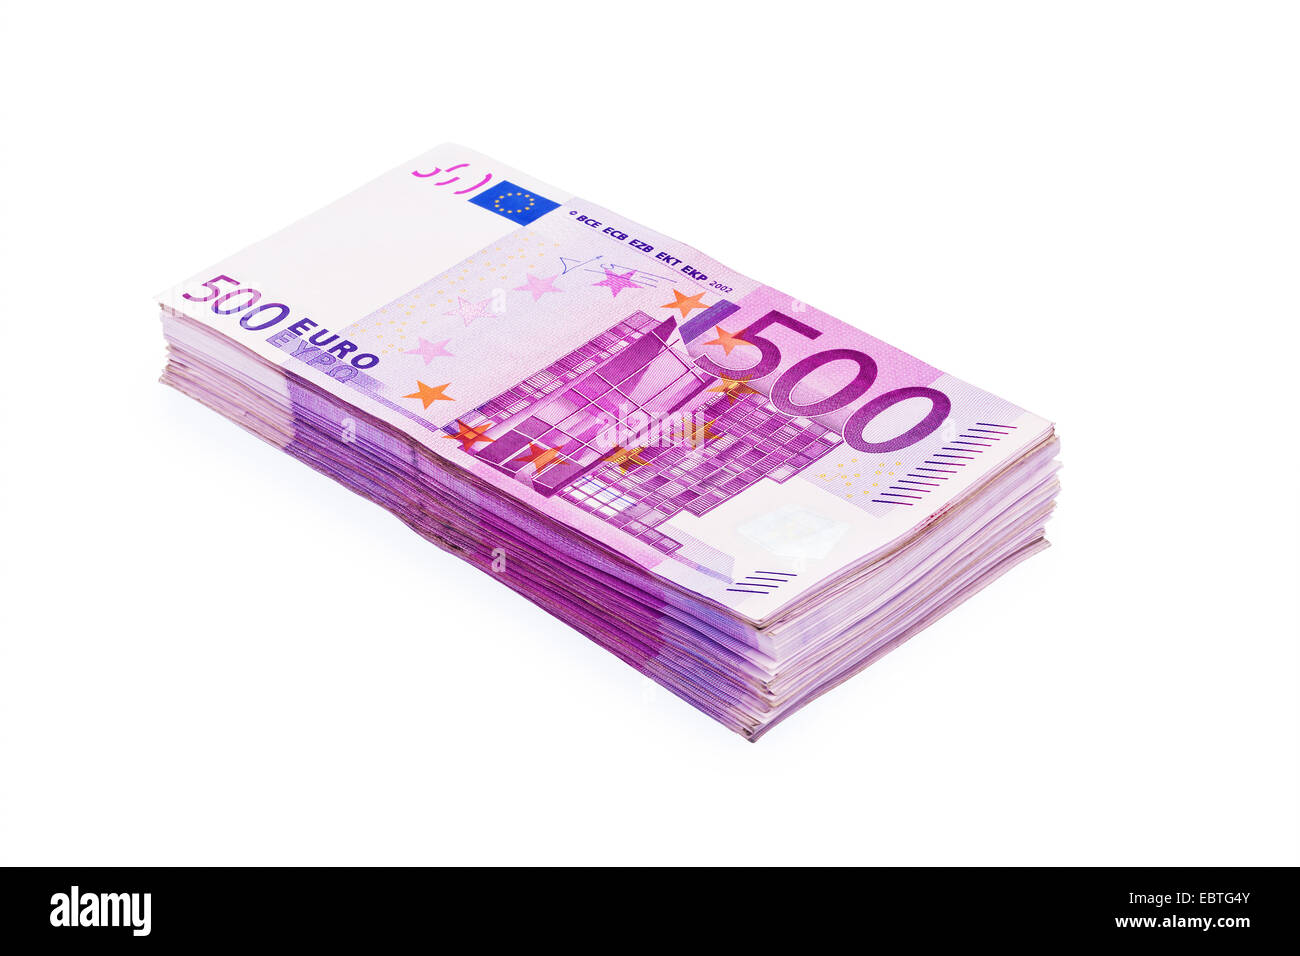 wad of 500 banknotes - Stock Image